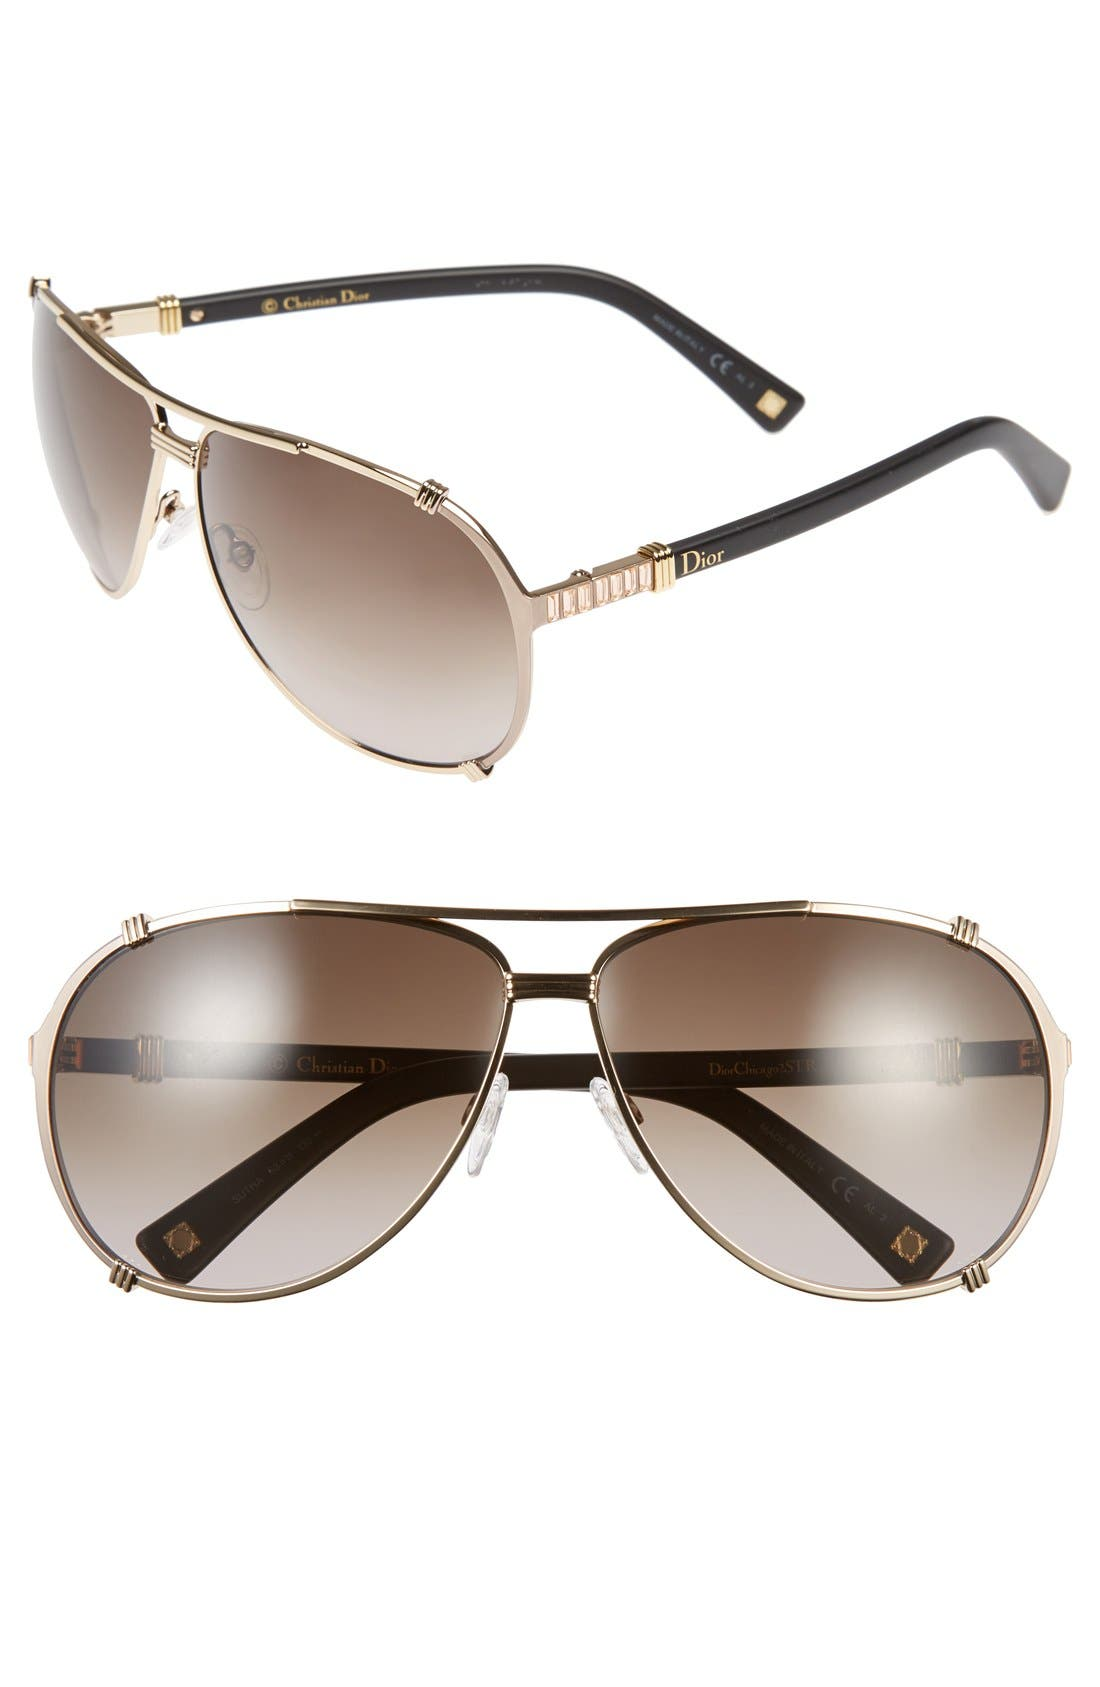 Main Image - Dior 'Chicago 2 Strass' 63mm Aviator Sunglasses